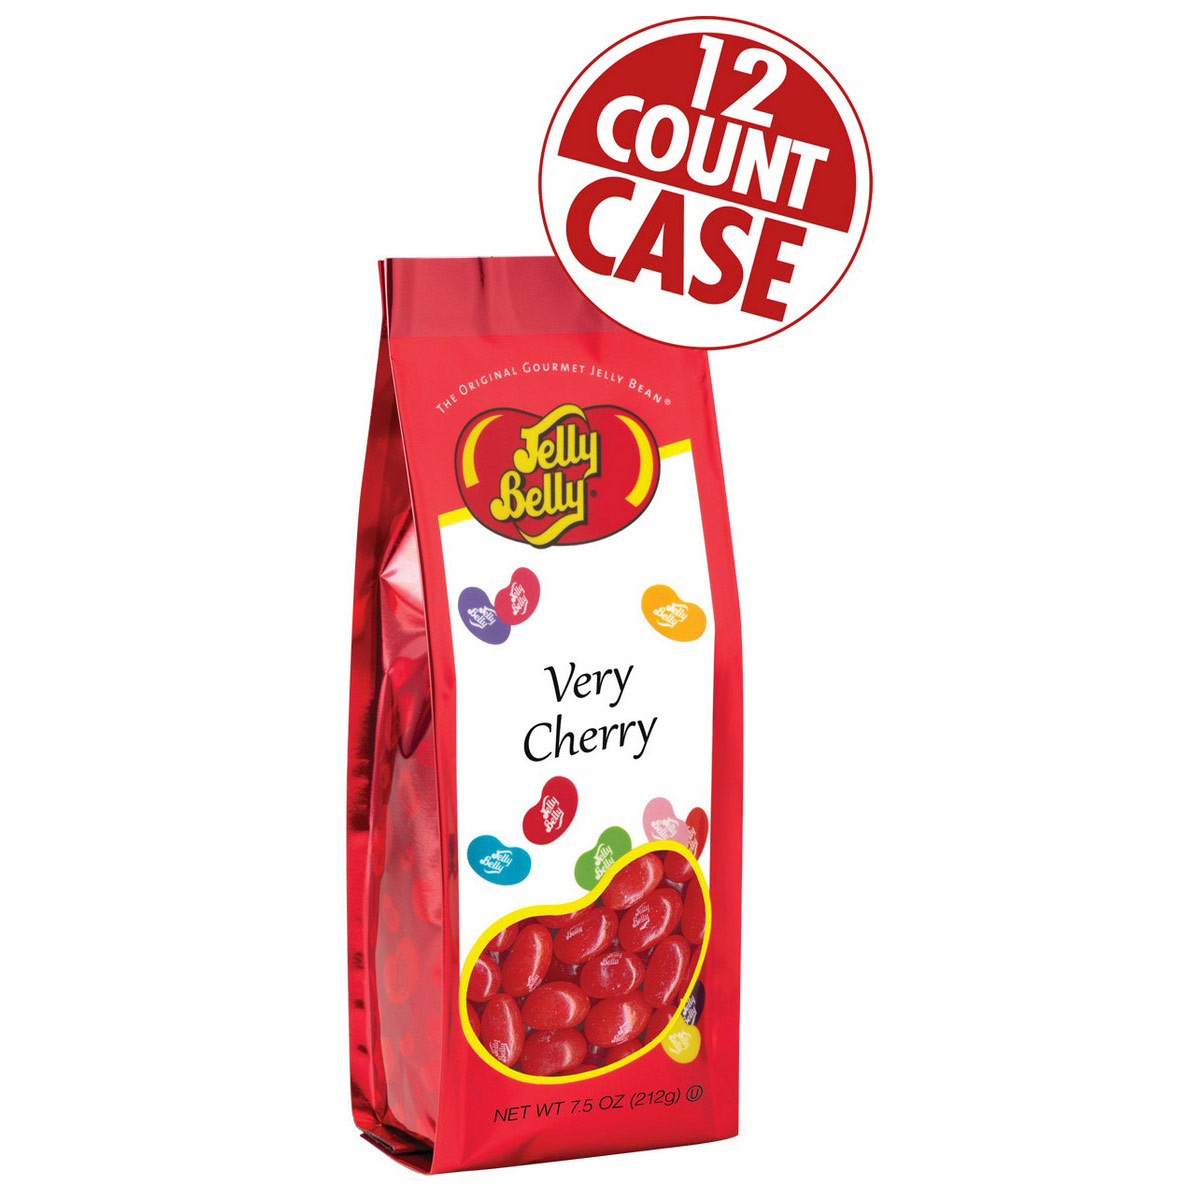 Very Cherry Jelly Beans 7.5 oz Gift Bags - 12 Count Case